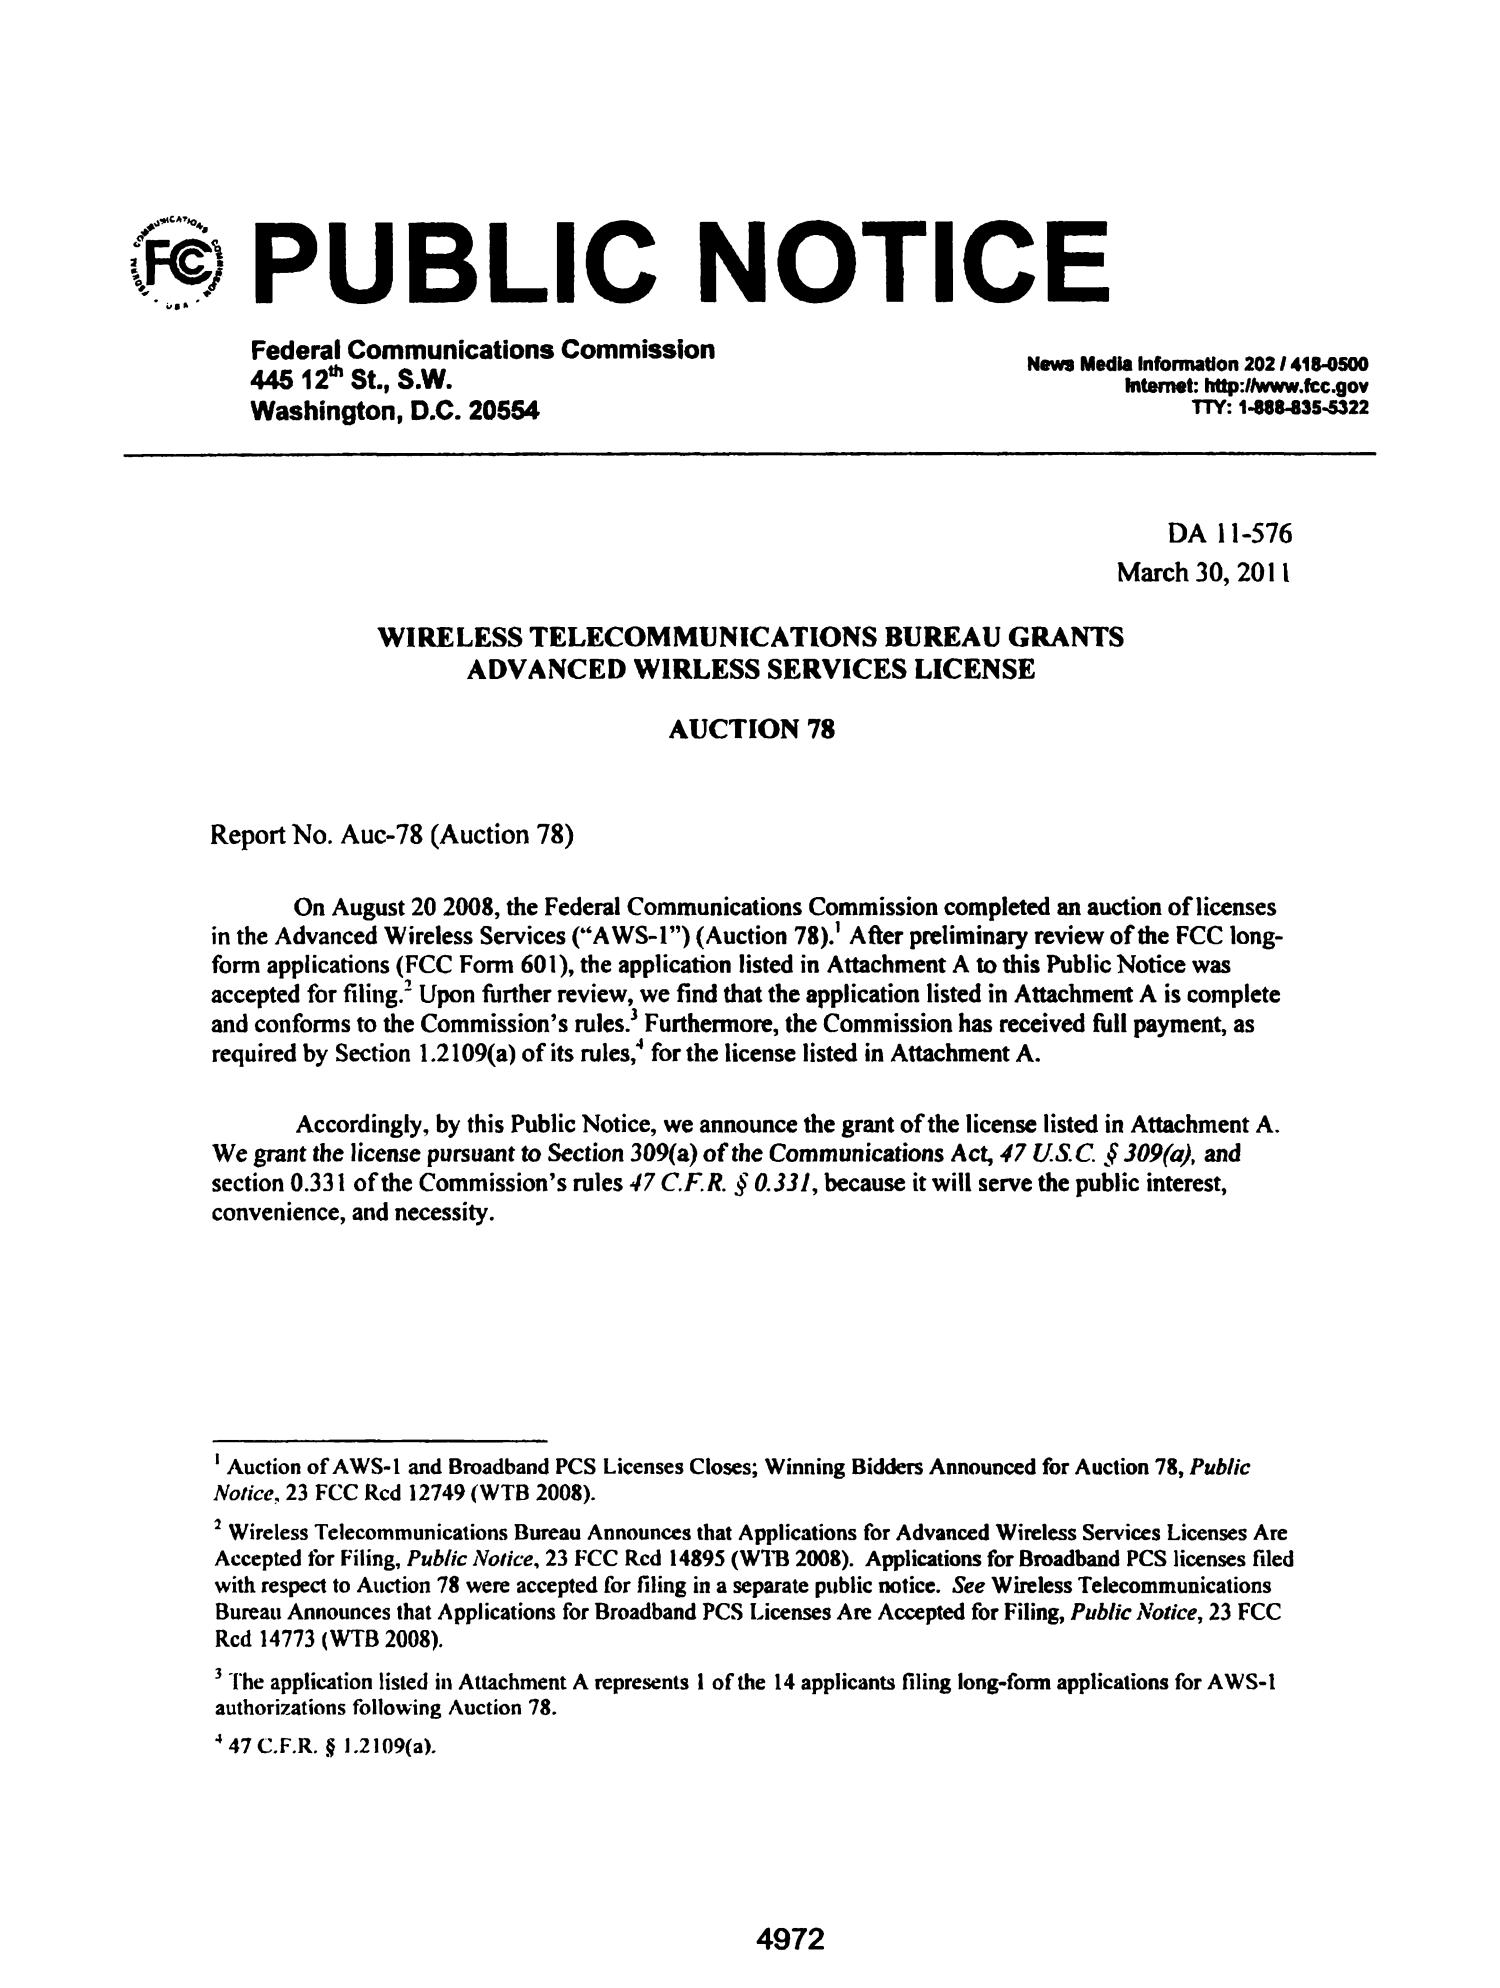 FCC Record, Volume 26, No. 7, Pages 4843 to 5761, March 28 - April 08, 2011                                                                                                      4972